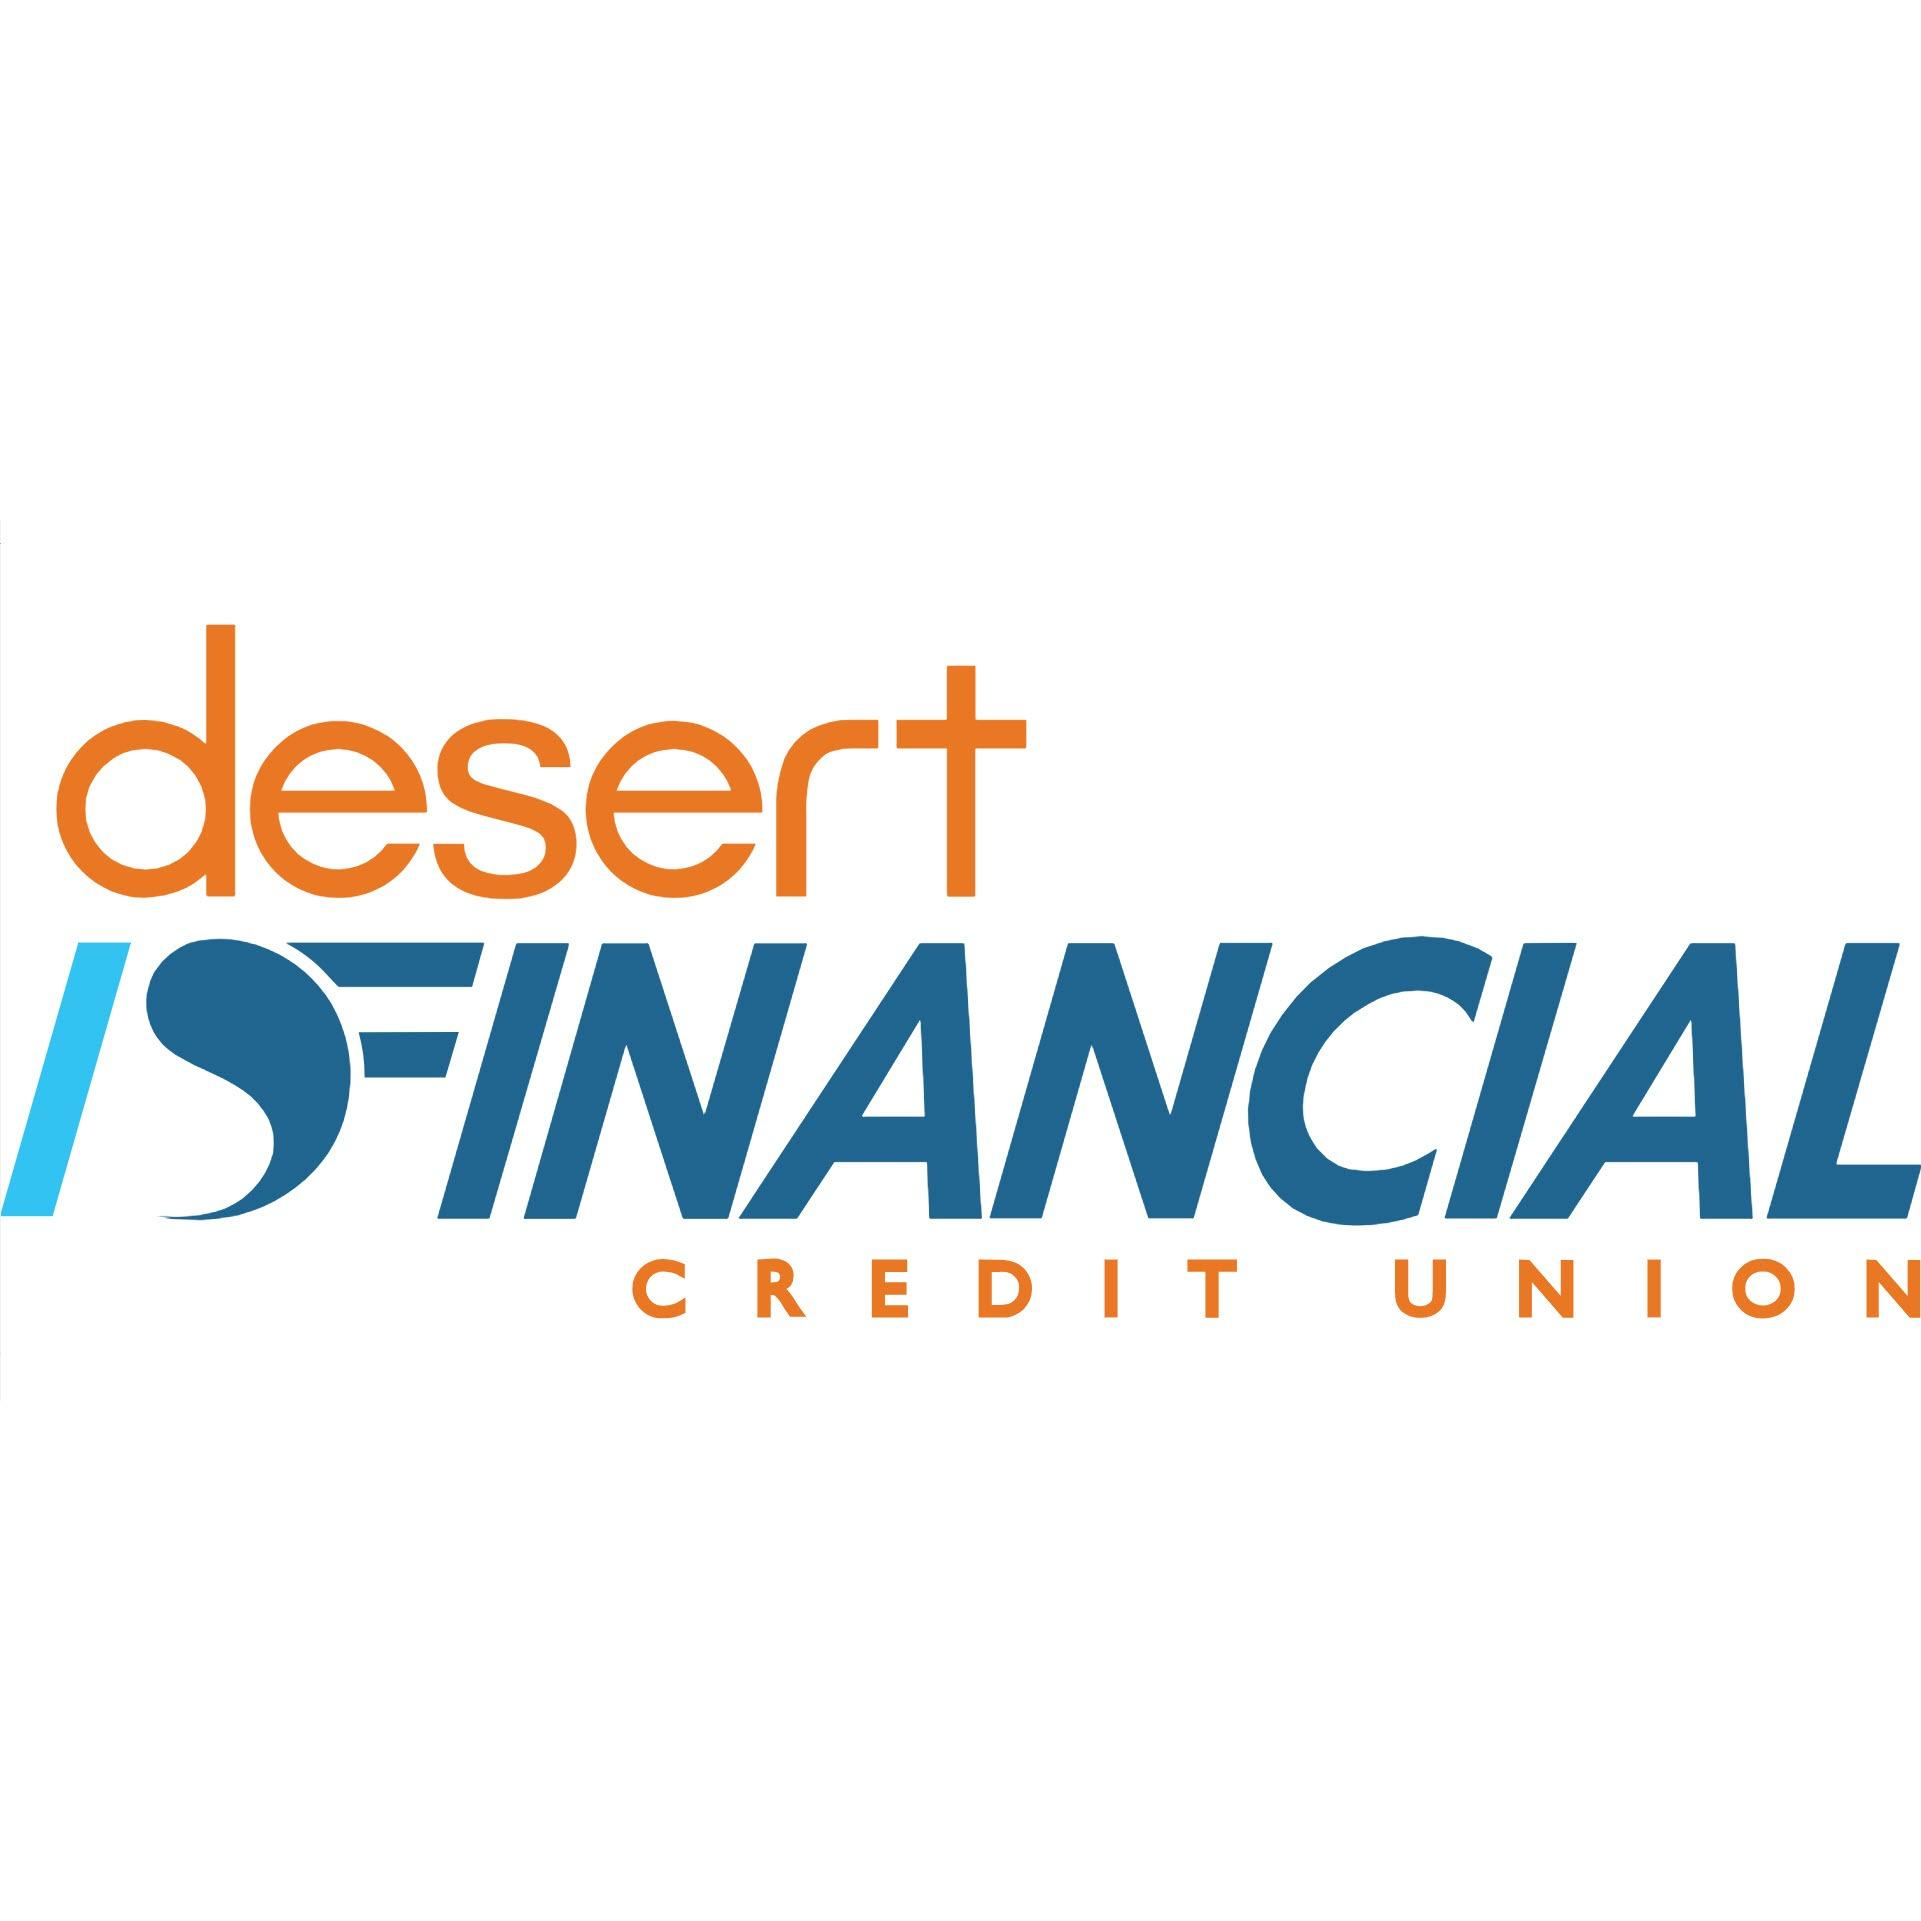 desert financial missouri: home mortgage, auto loans, business